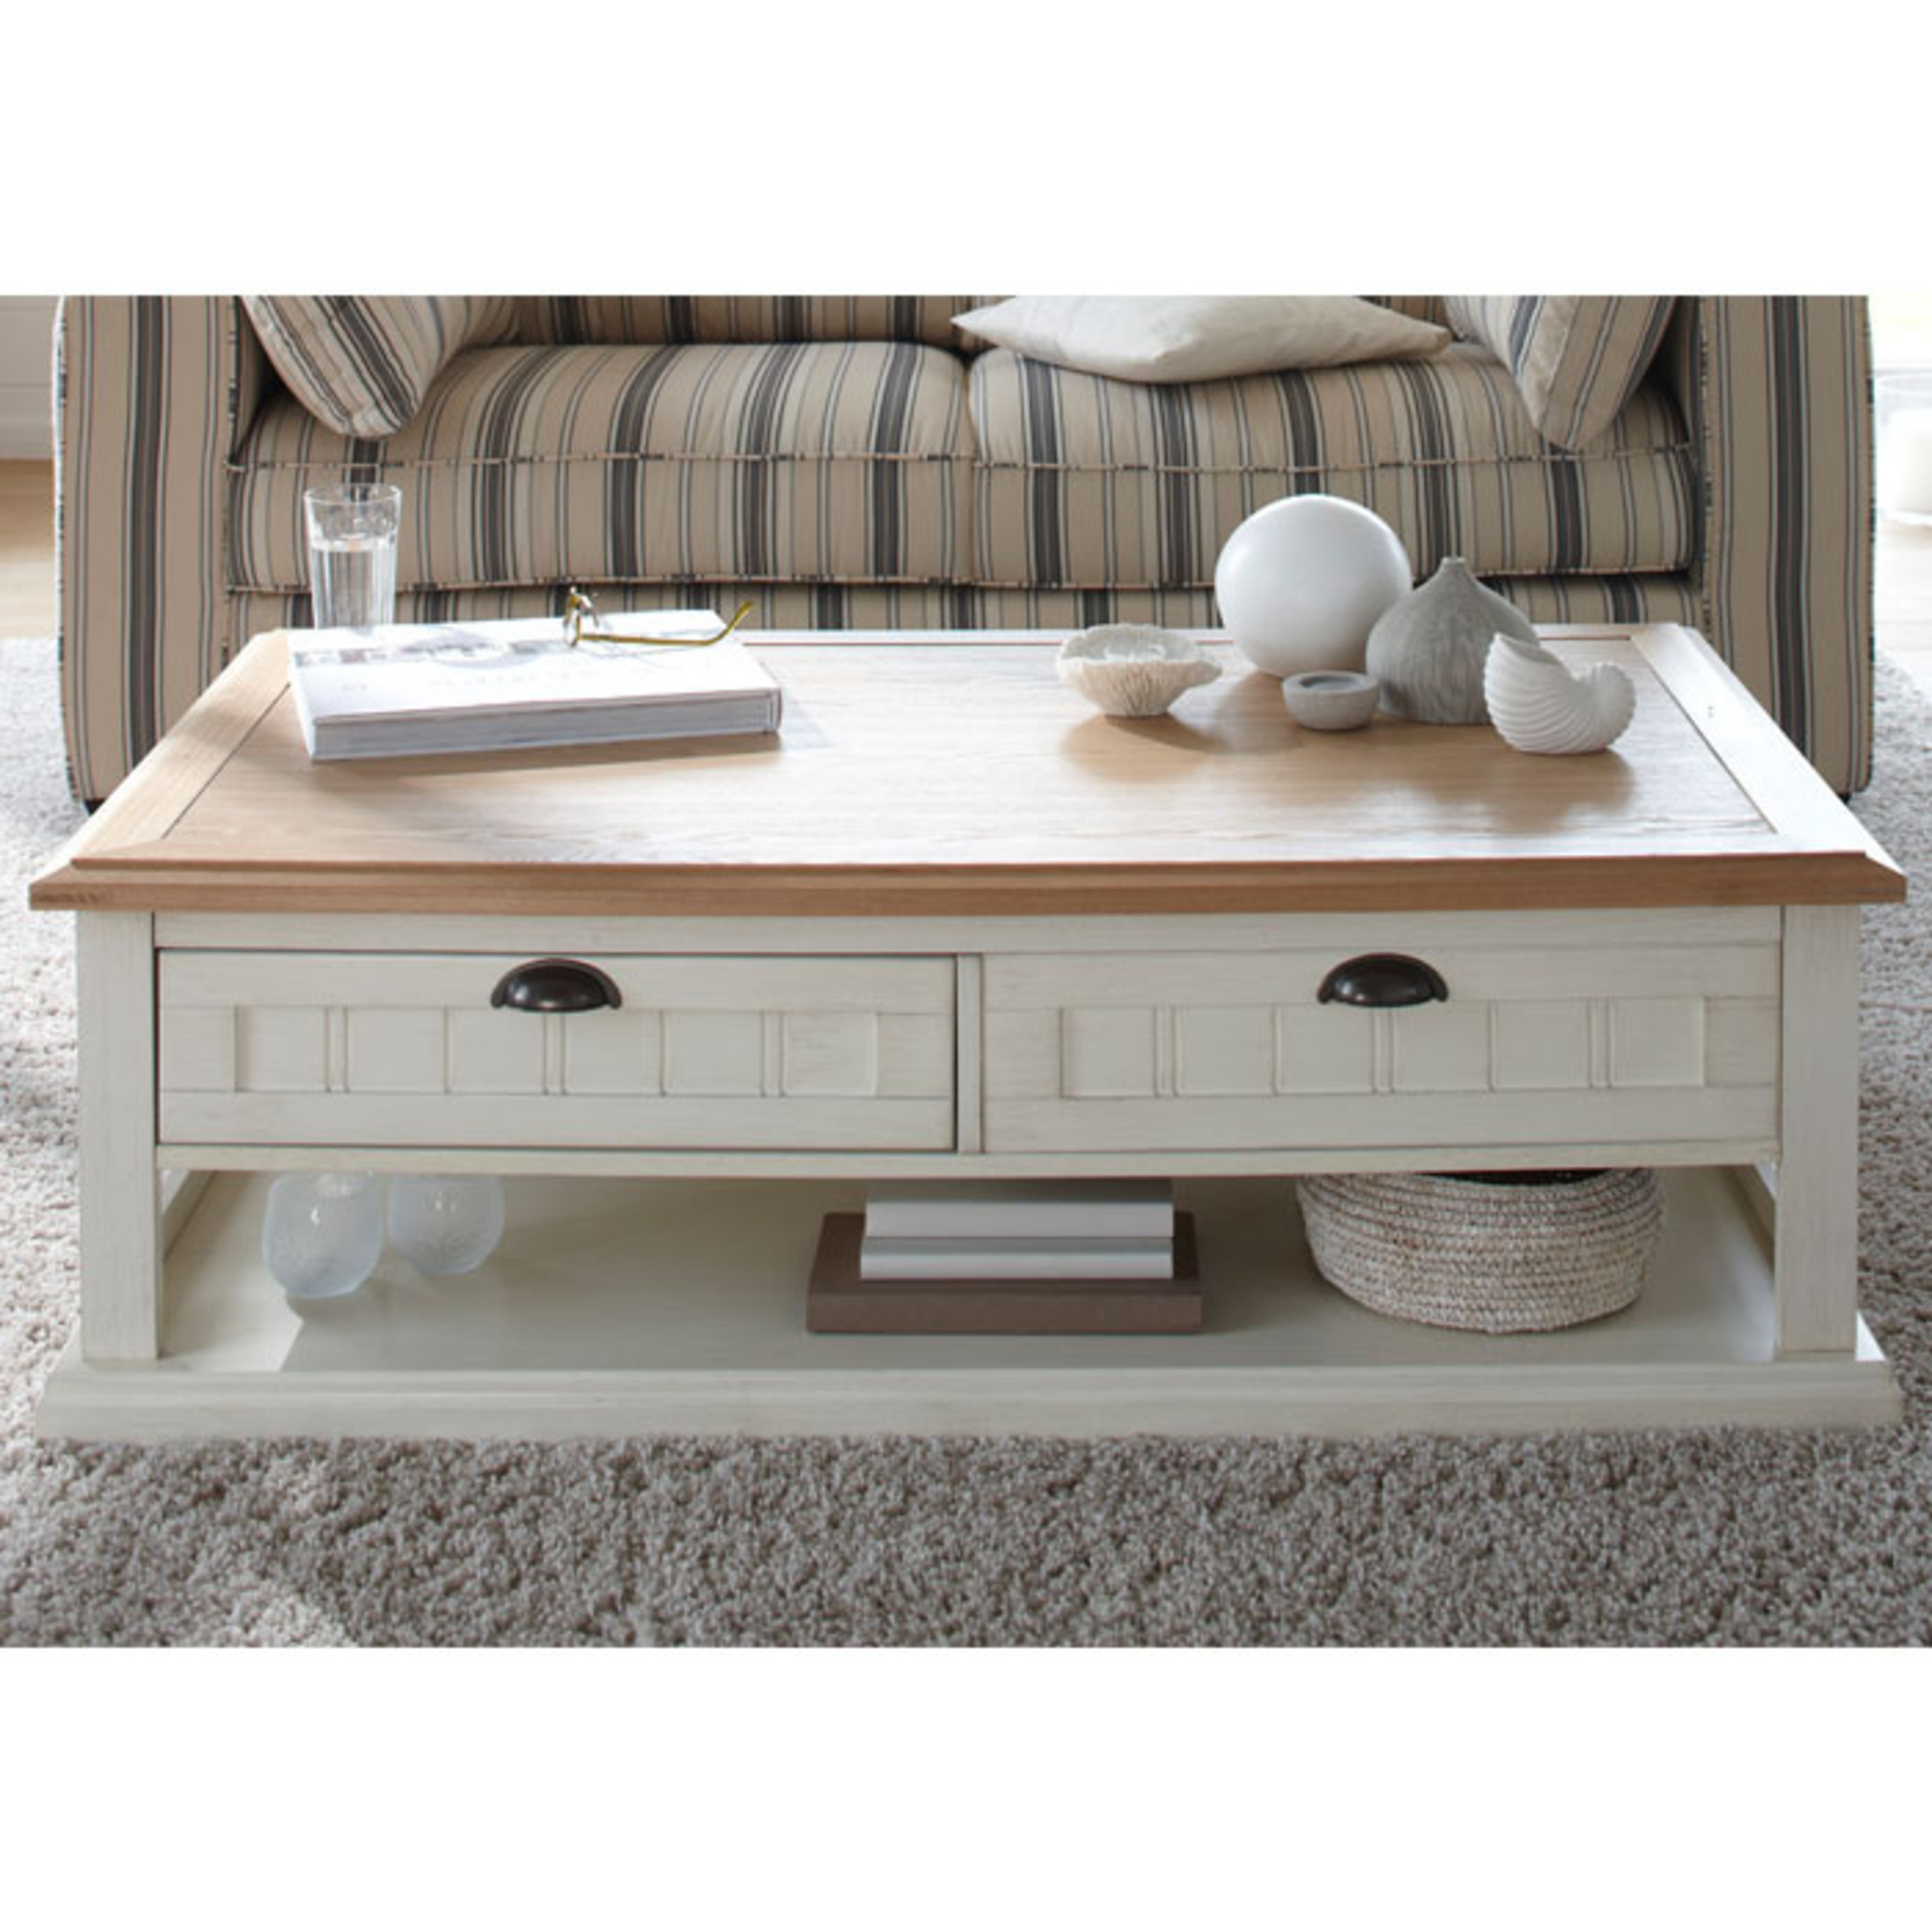 Table basse bois blanc vieilli table de lit for Table blanche et bois